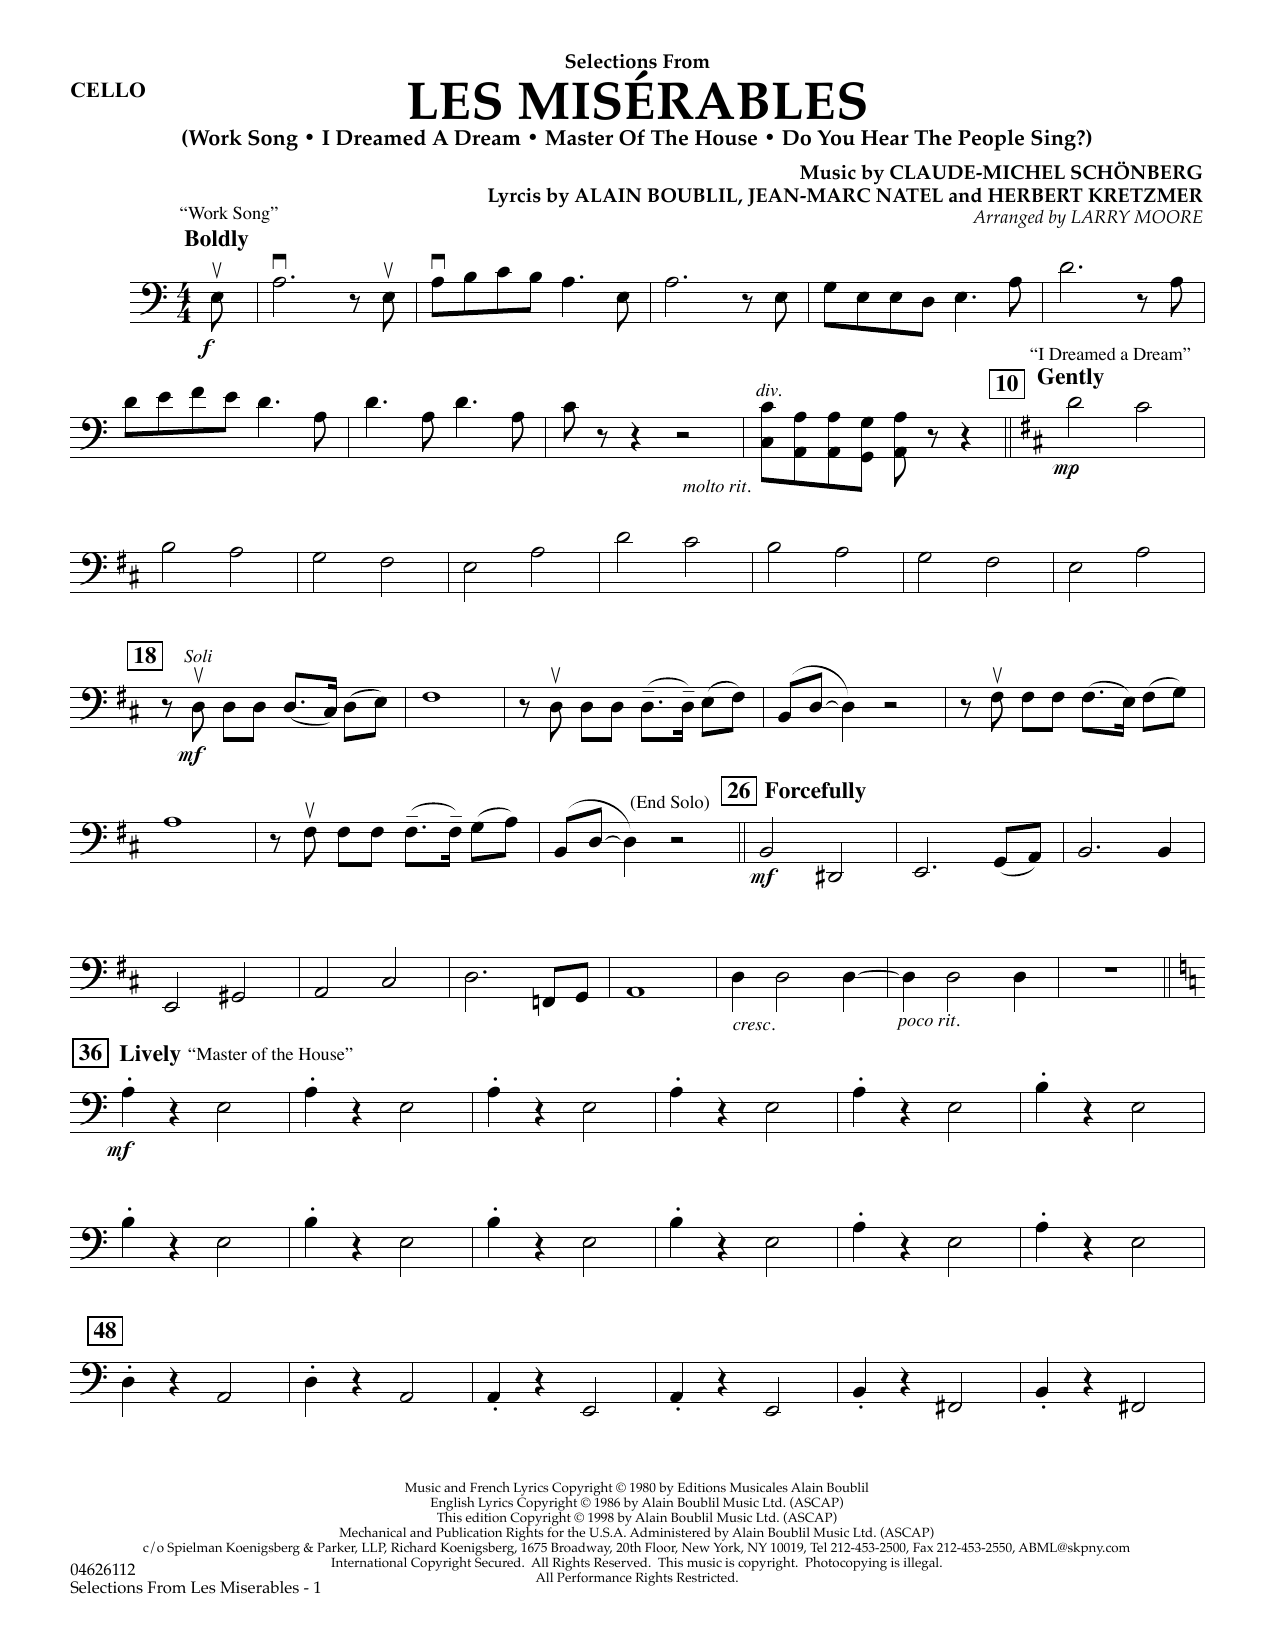 Selections from Les Misérables (arr. Larry Moore) - Cello (Orchestra)